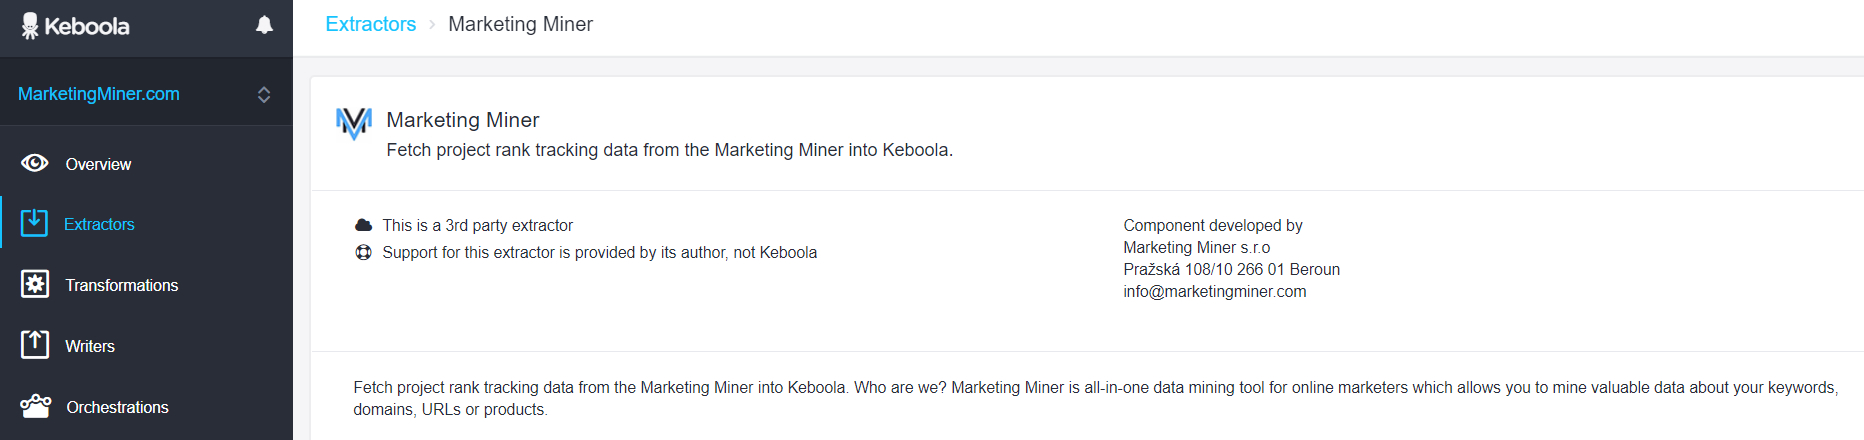 Extractor pro Marketing Miner